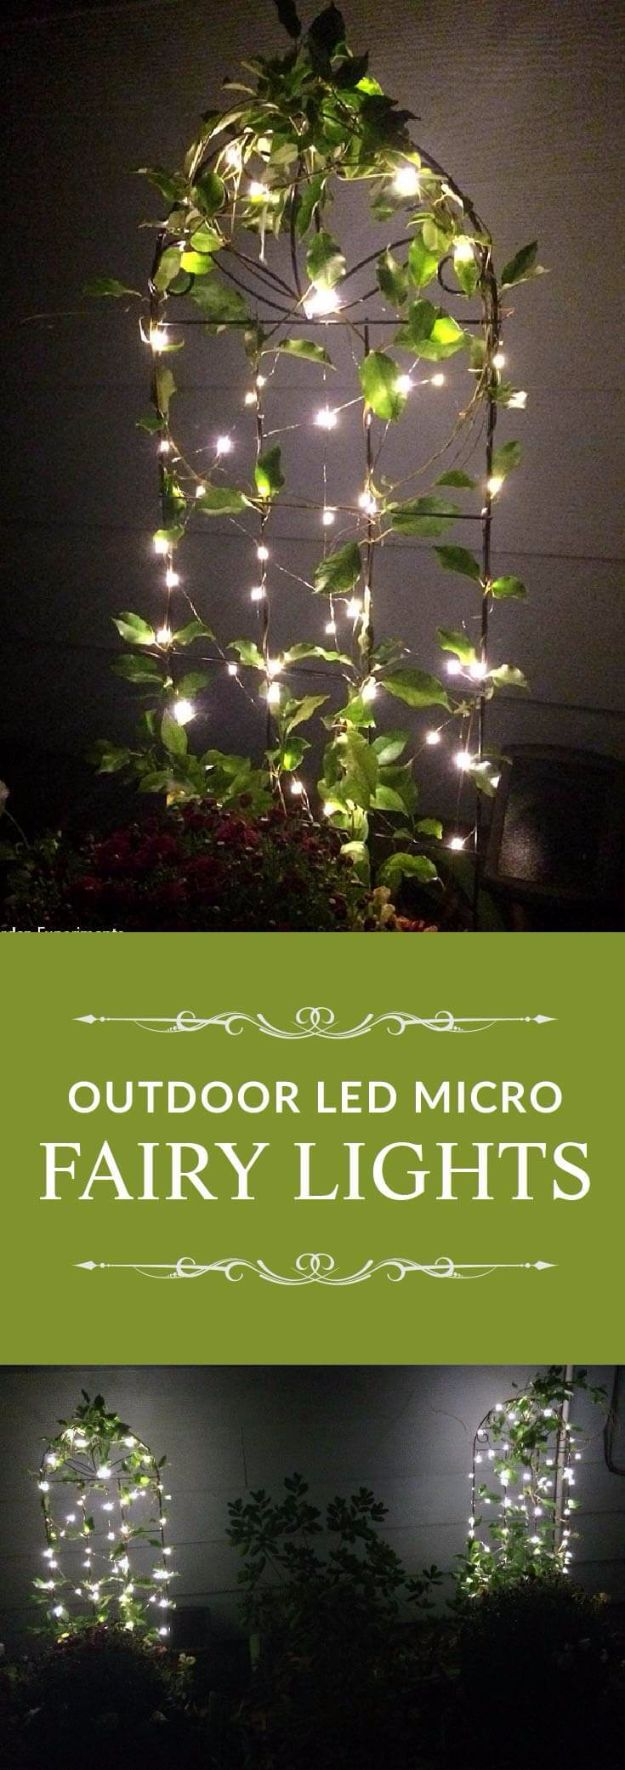 DIY Outdoor Lighting Ideas - Outdoor Fairy Lights - Do It Yourself Lighting Ideas for the Backyard, Patio, Porch and Pool - Lights, Chandeliers, Lamps and String Lights for Your Outdoors - Dining Table and Chair Lighting, Overhead, Sconces and Weatherproof Projects #diy #lighting